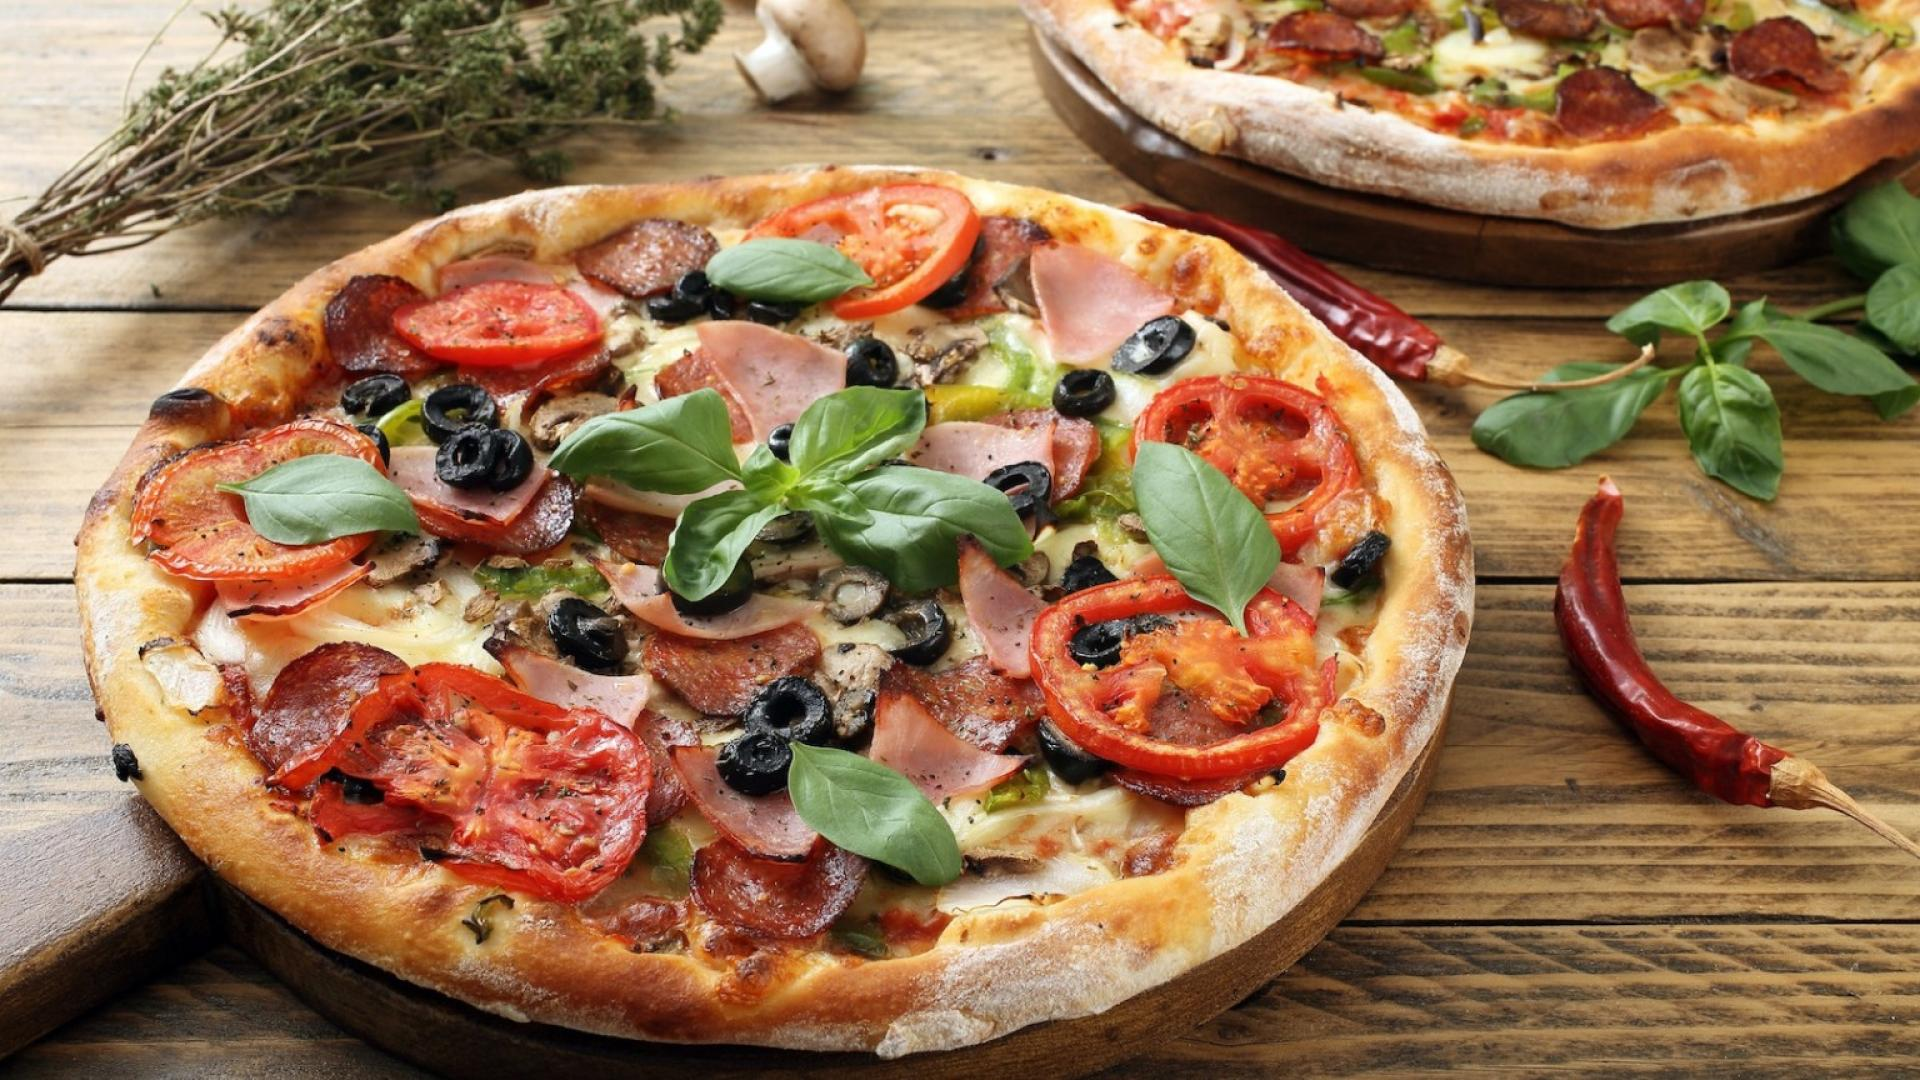 PLANETE PIZZA & FOODS